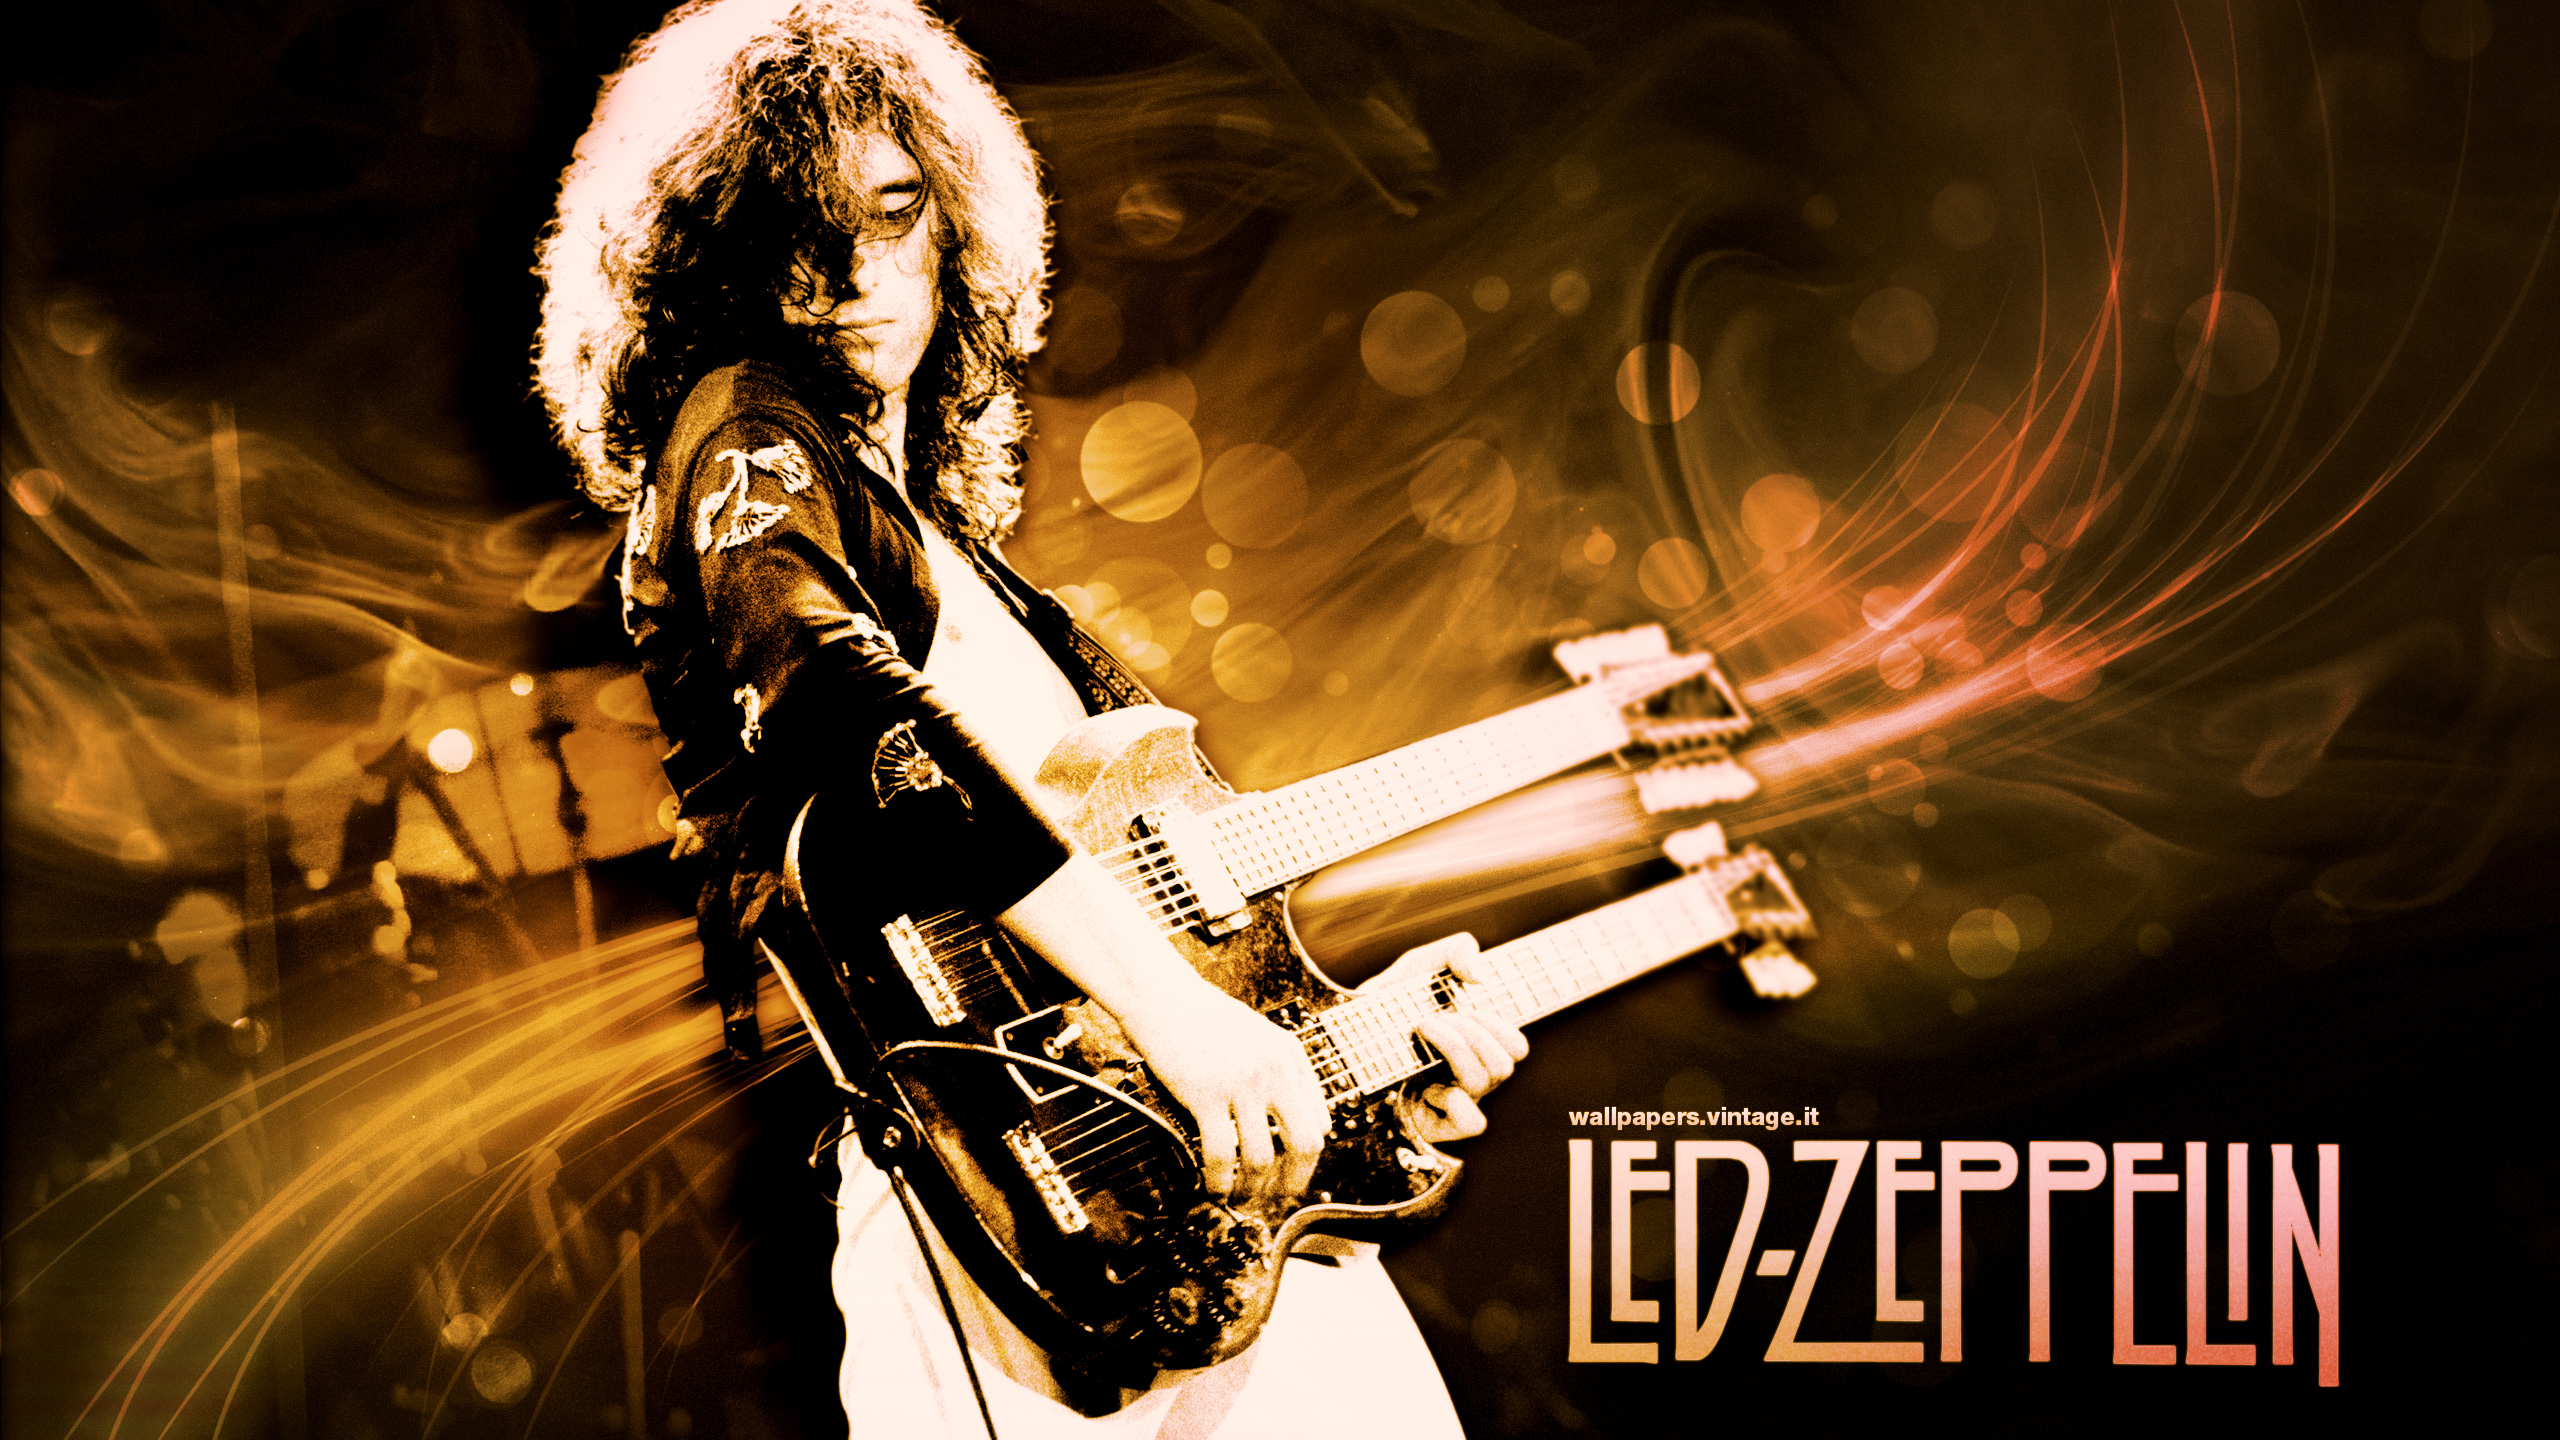 Zeppelin 4k Wallpapers For Your Desktop Or Mobile Screen Free And